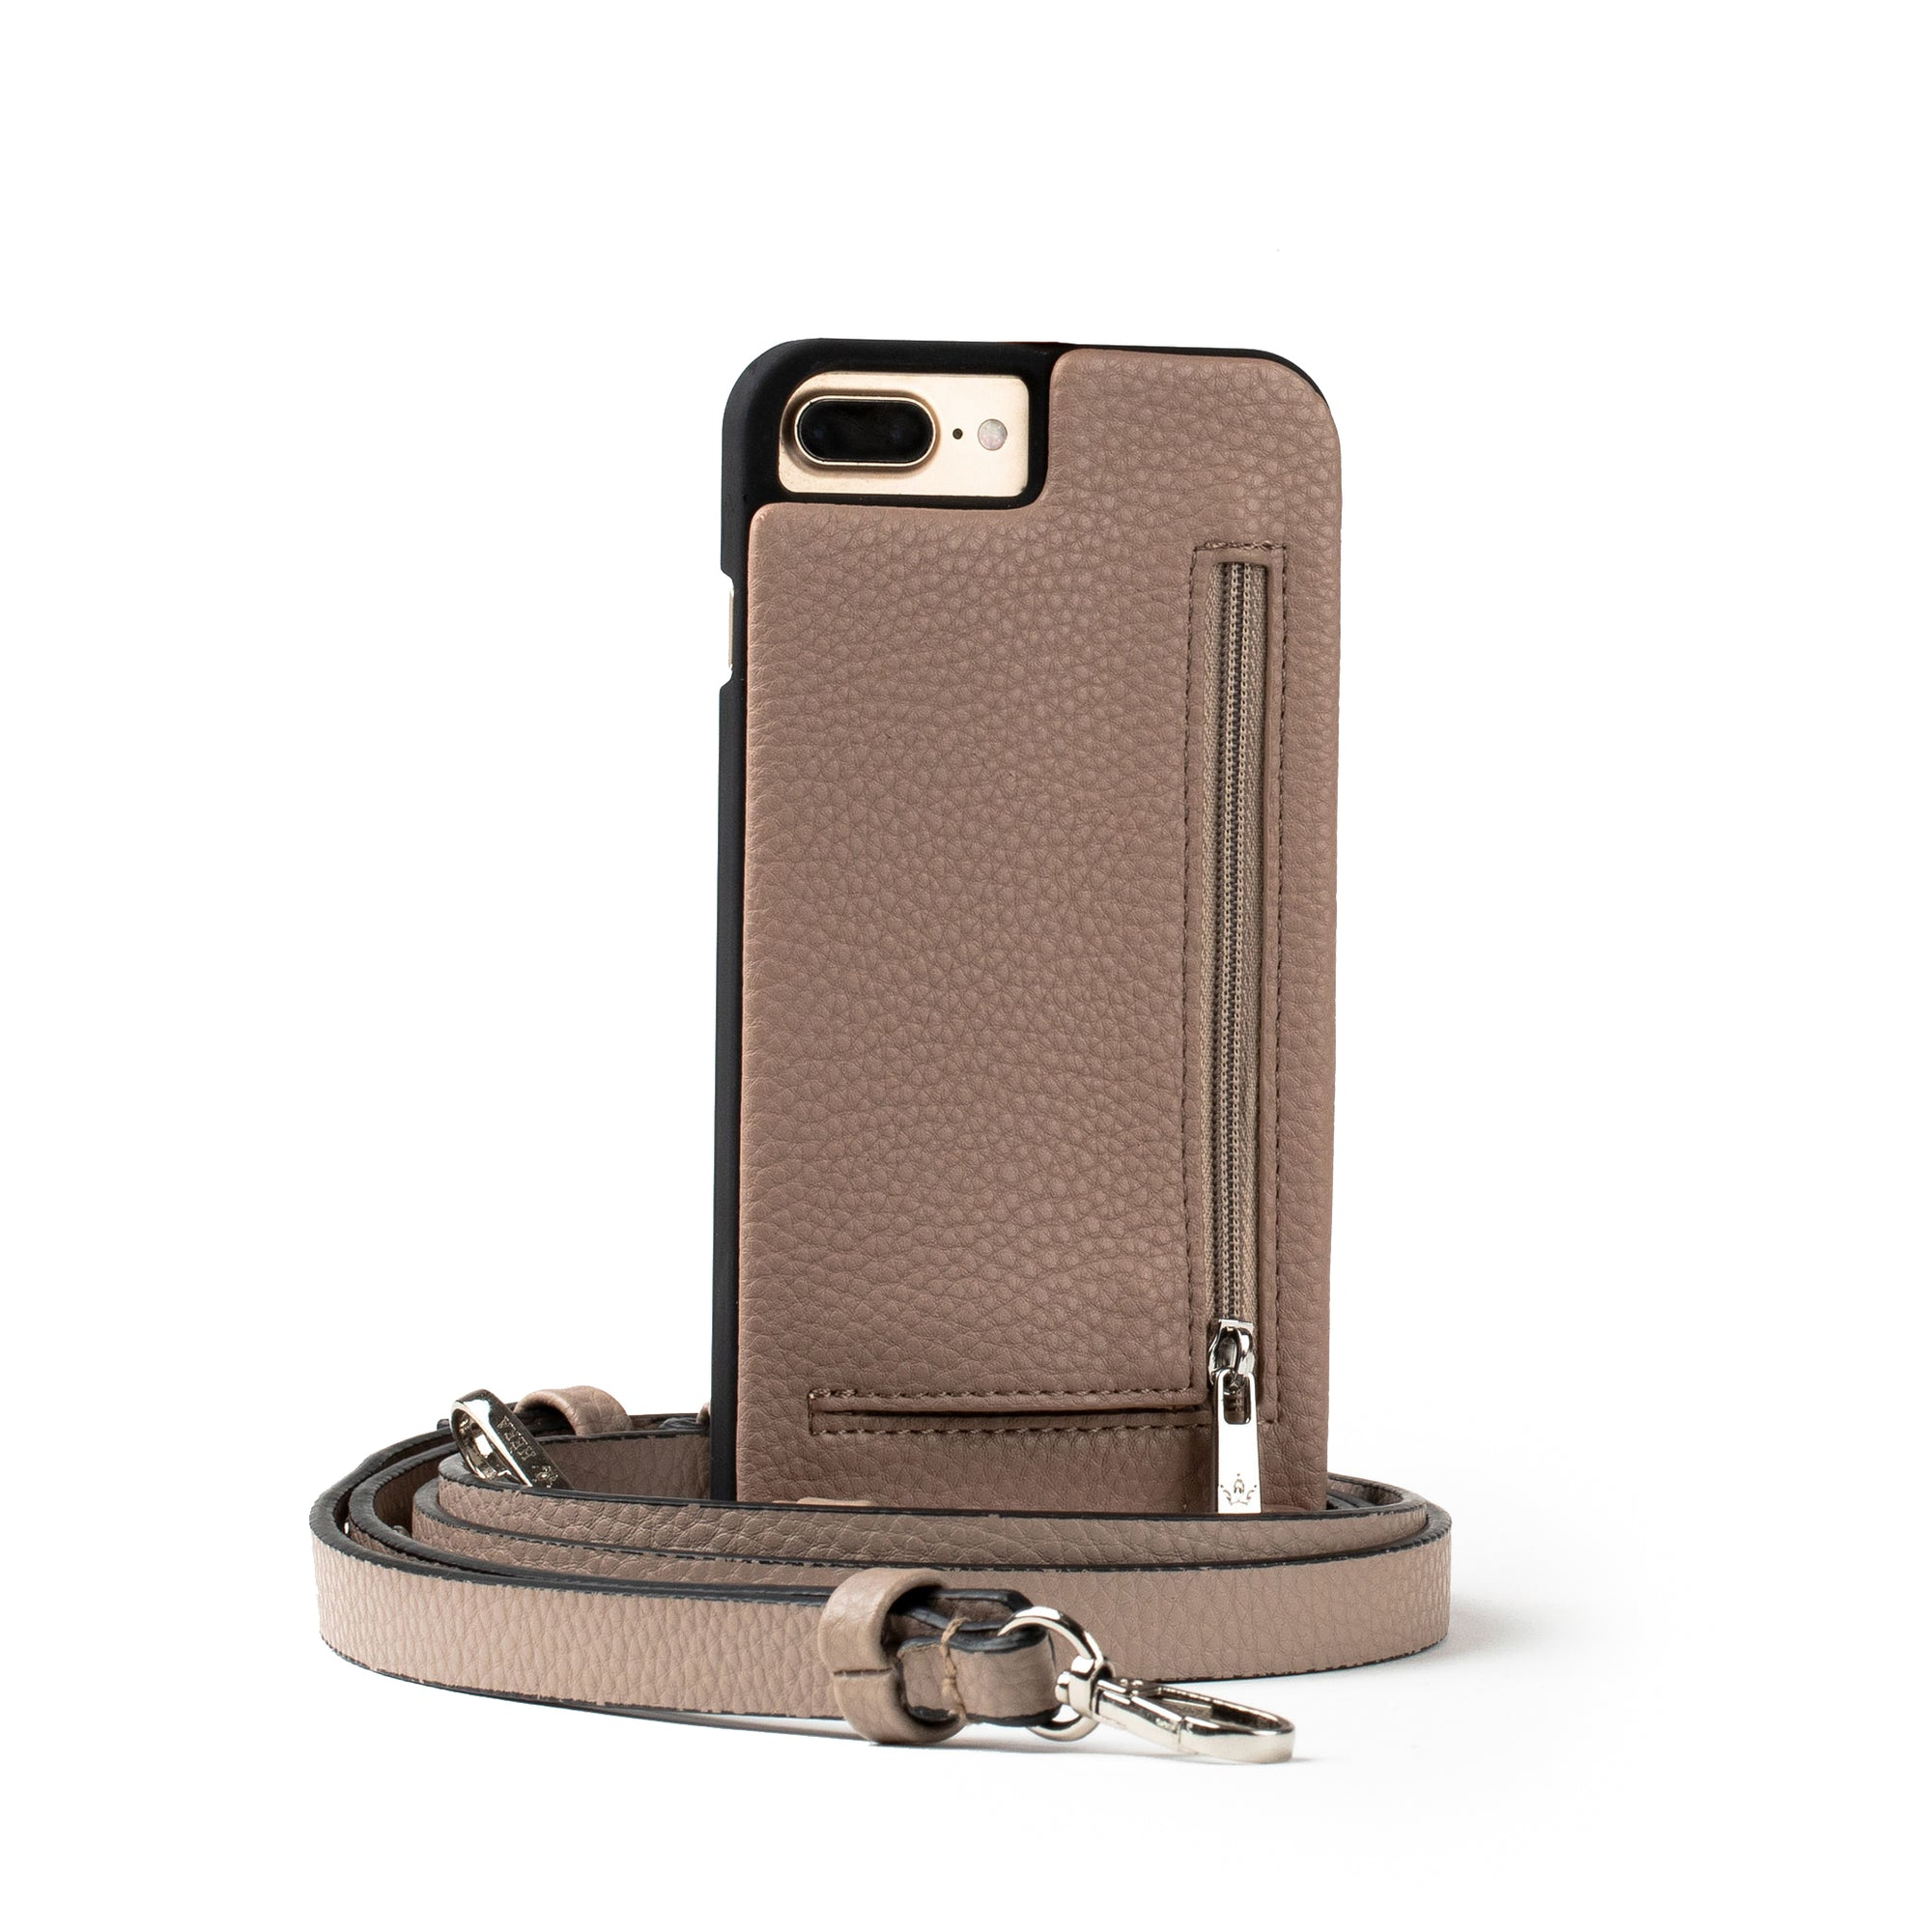 Jolene G2 iPhone Carrying Case - 6+, 6s+, 7+, 8+ (PLUS)